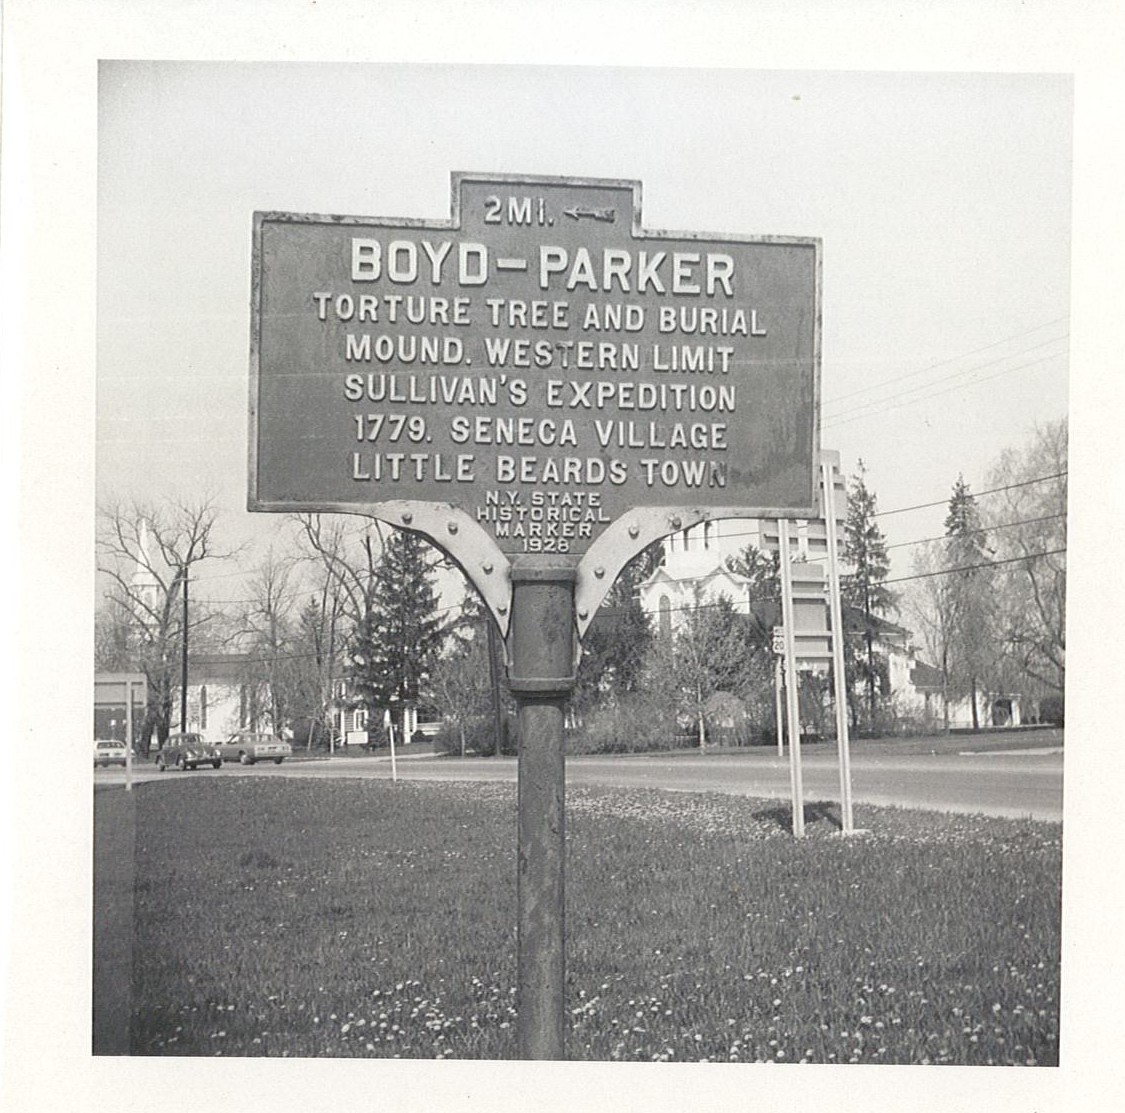 Image of blue and yellow historical marker sign for Boyd and Parker memorial site